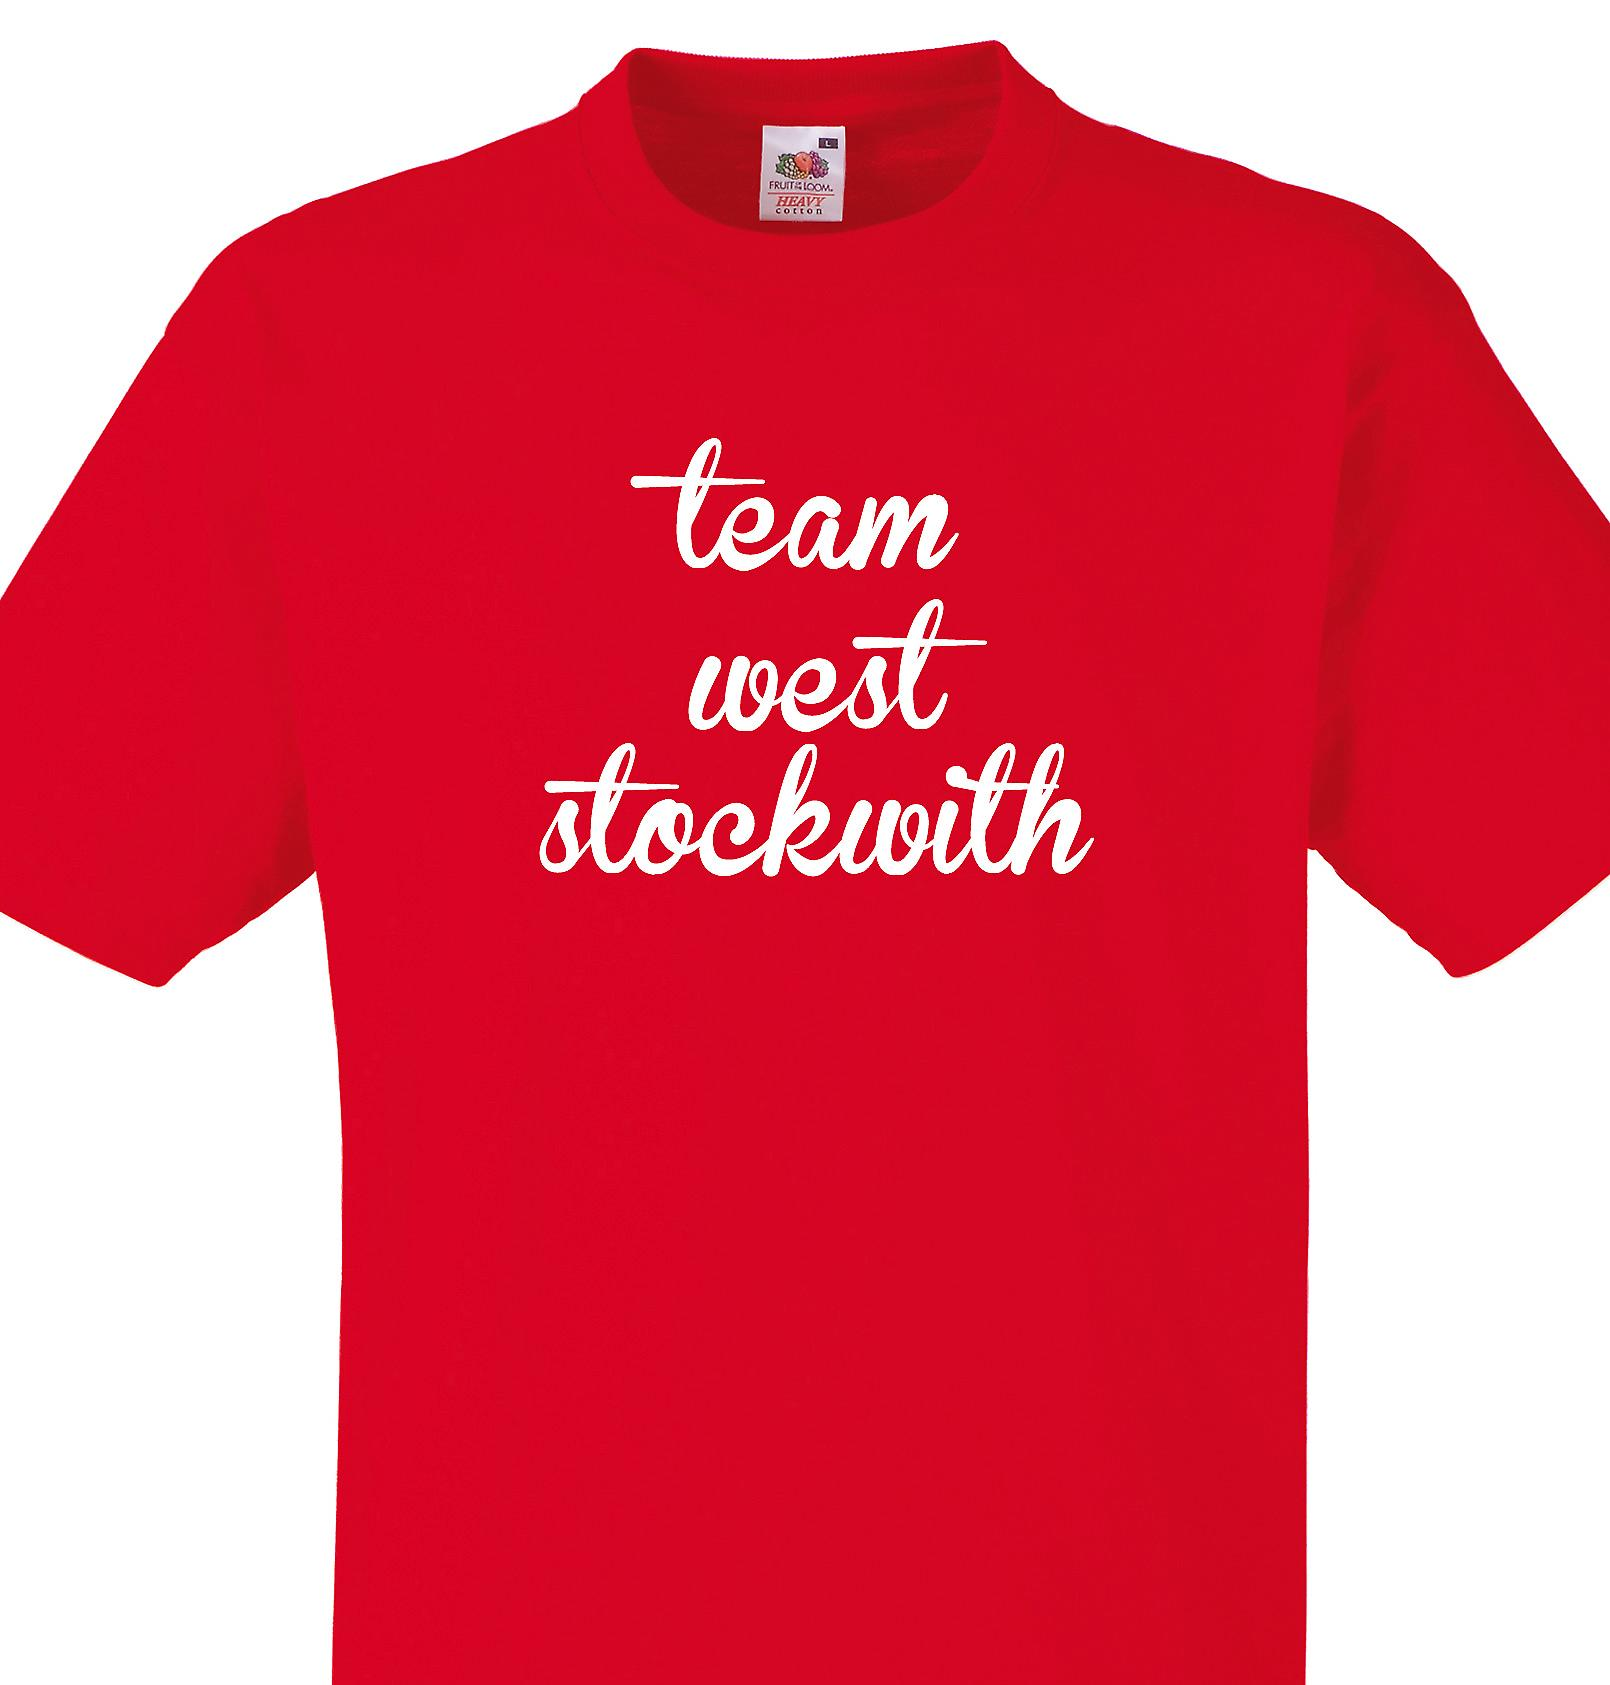 Team West stockwith Red T shirt